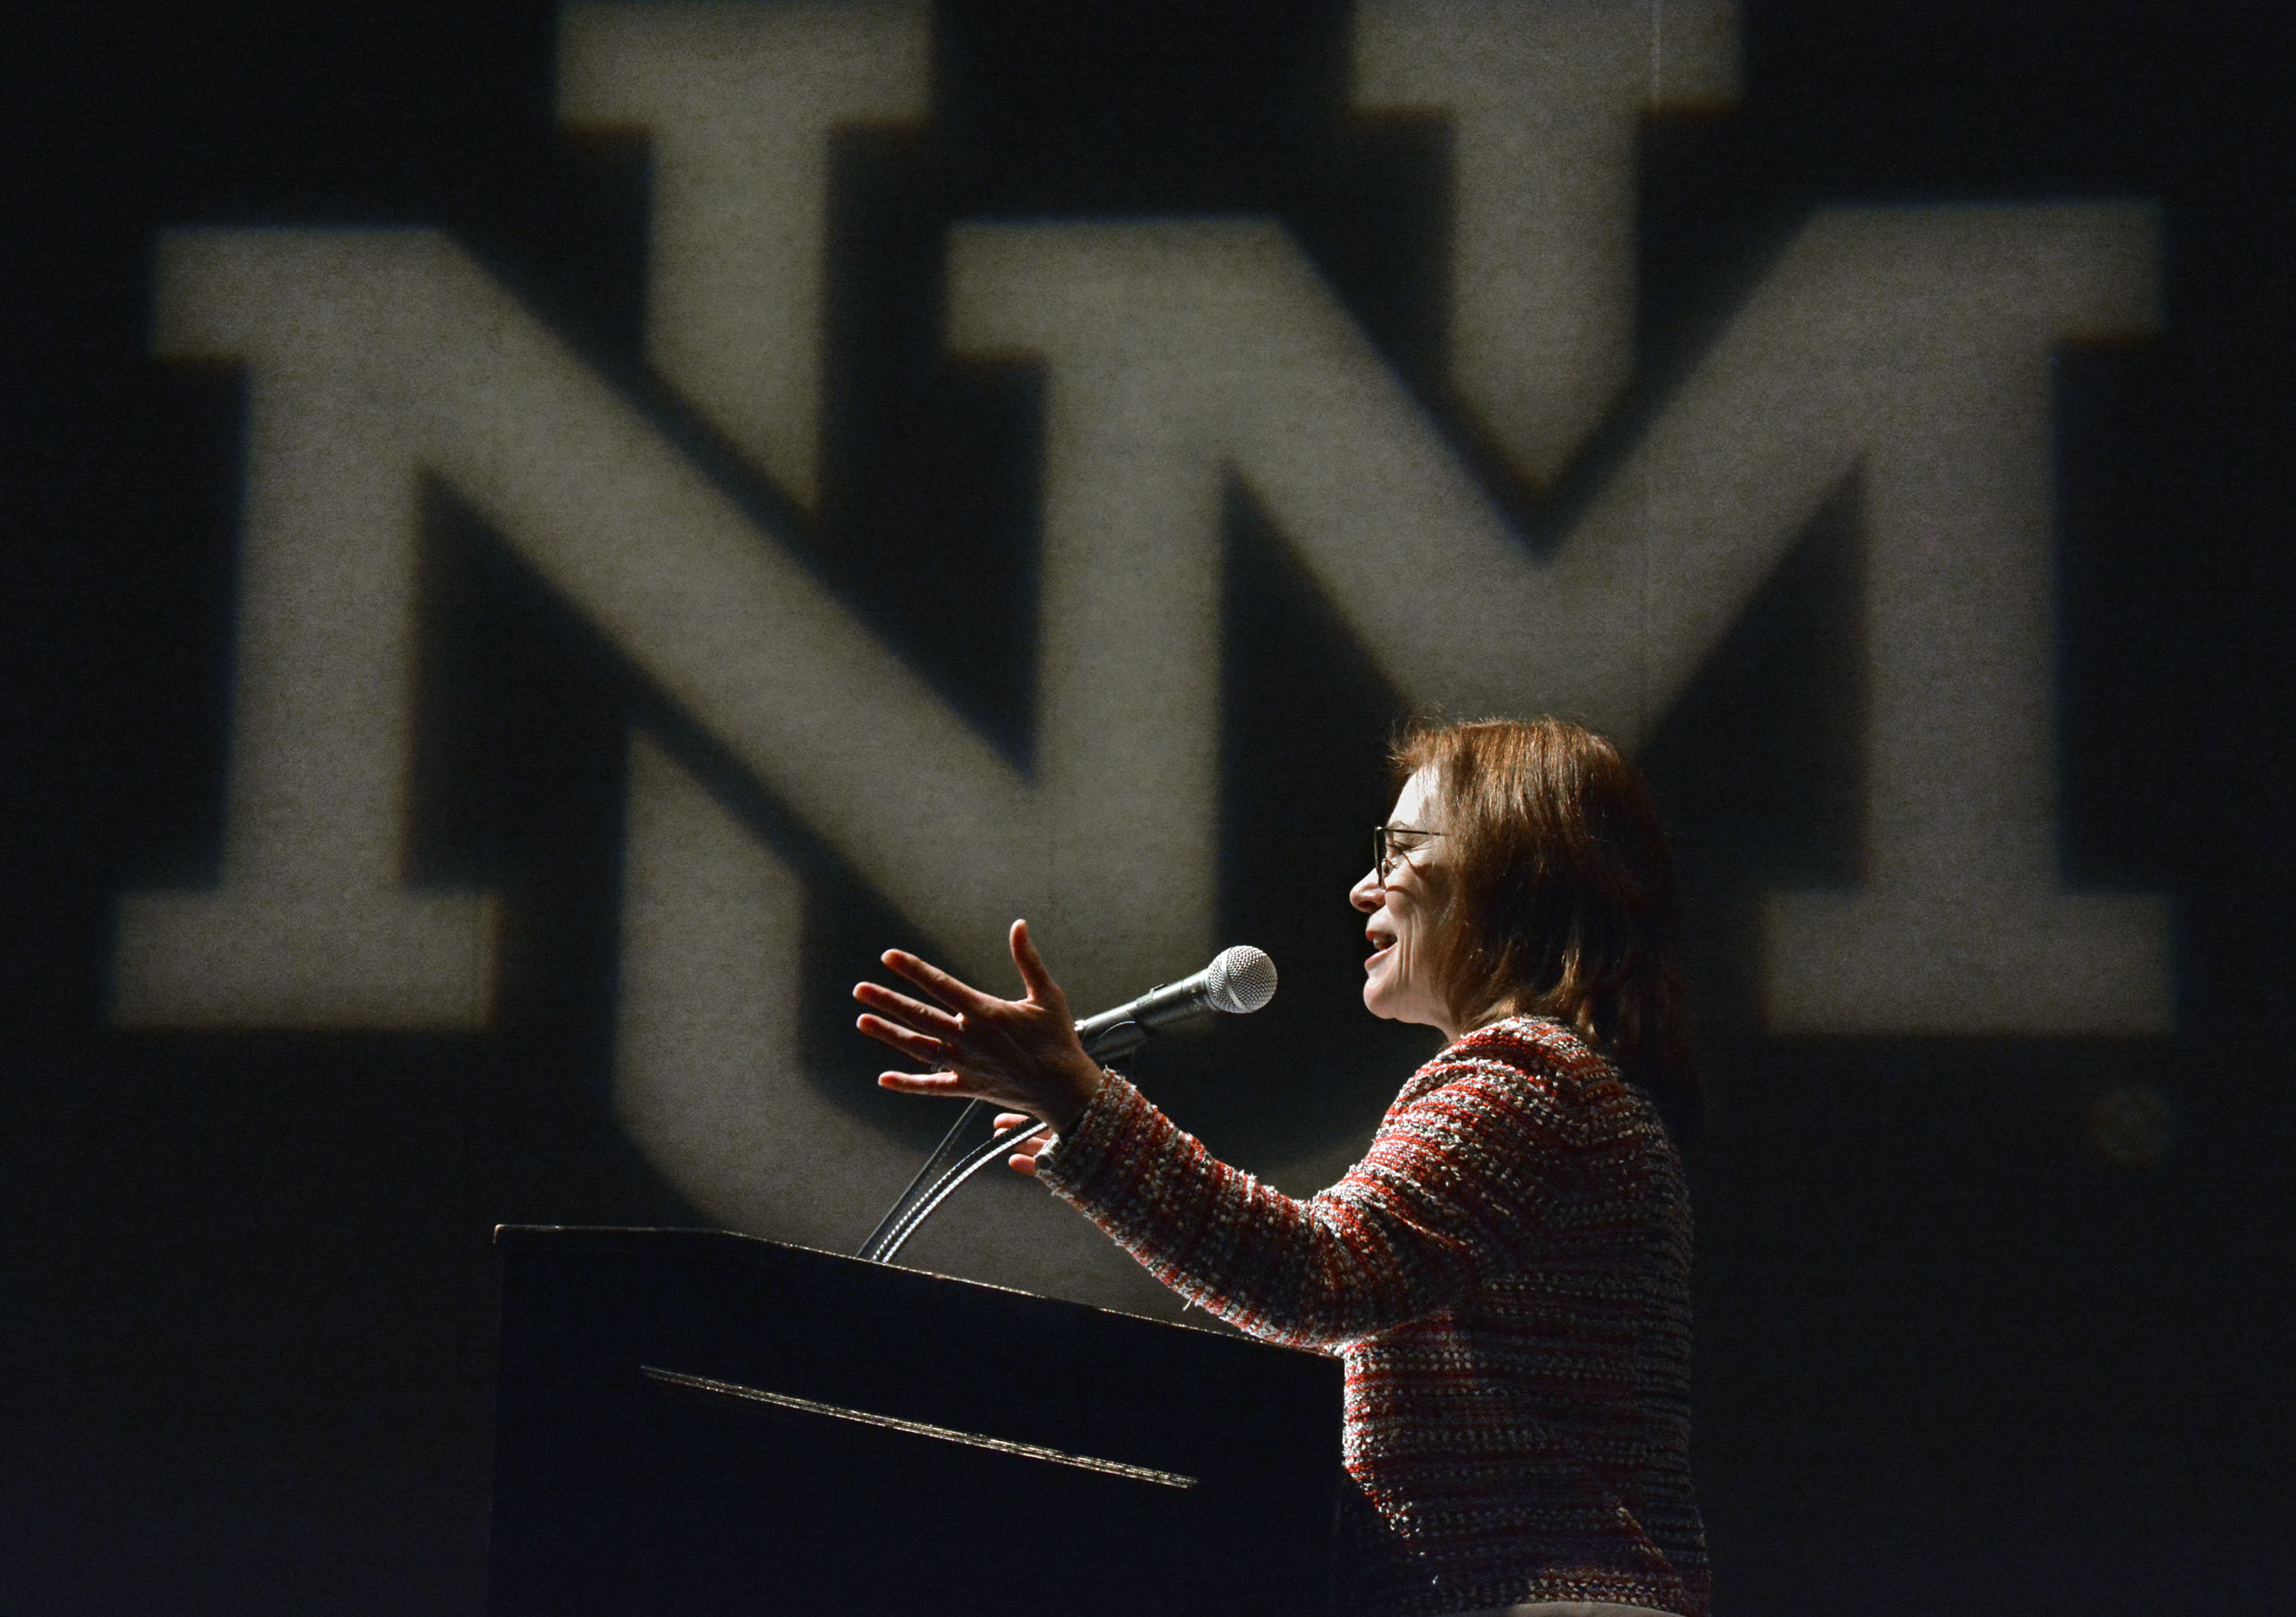 Stokes vows safety, diversity in State of University speech